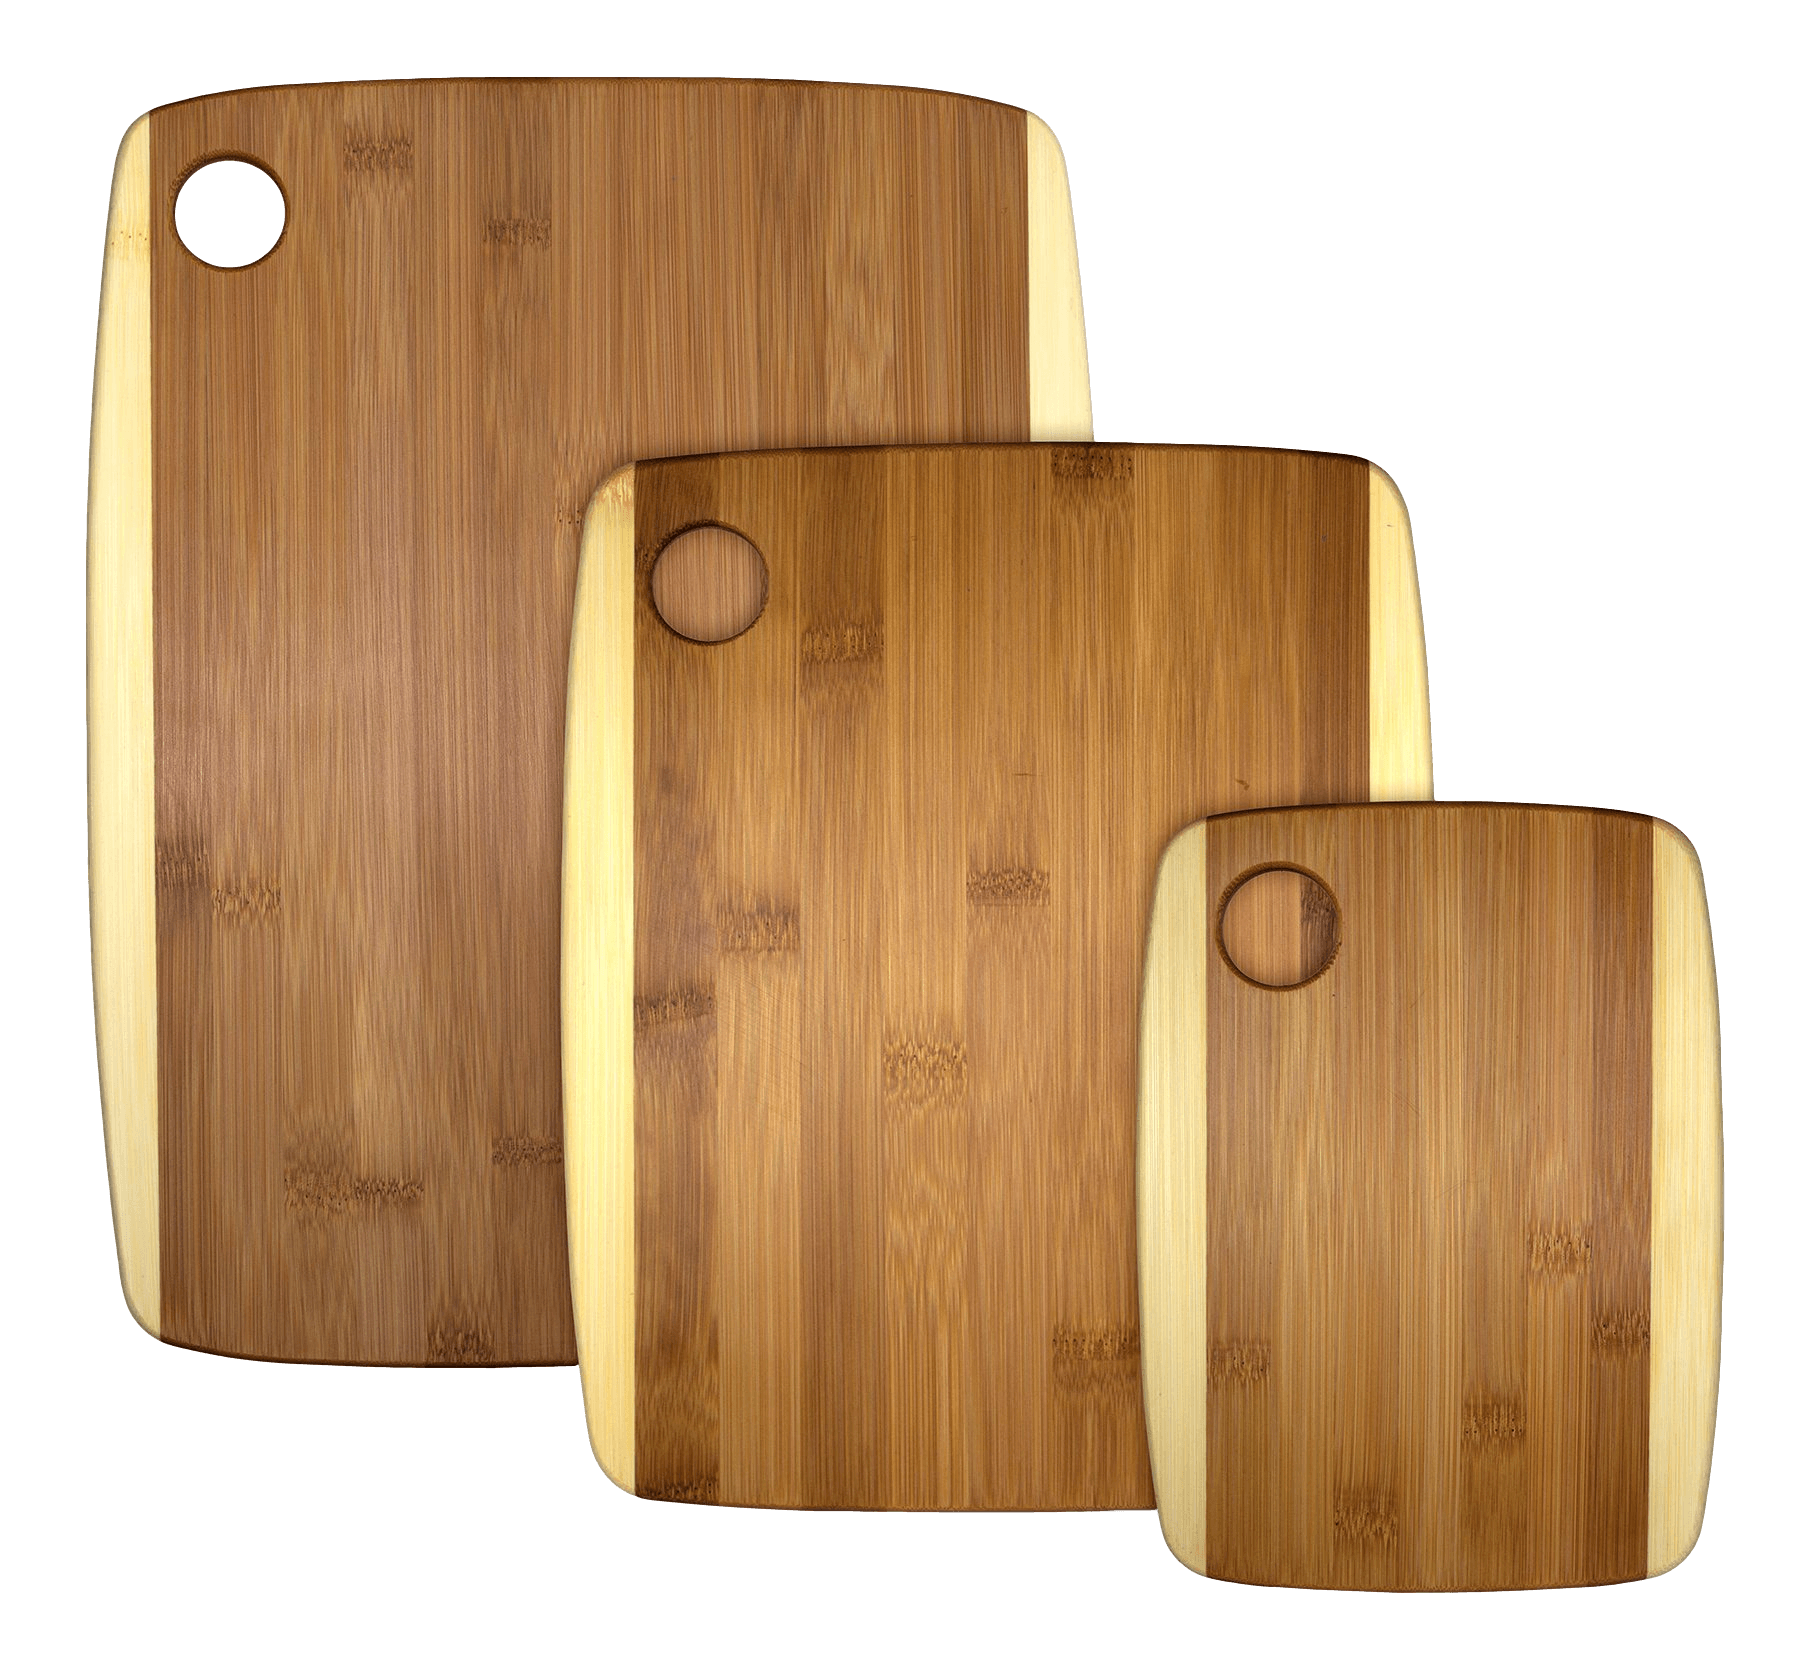 3 piece 2-tone Serving and Cutting Board | Laser Pics & Gifts